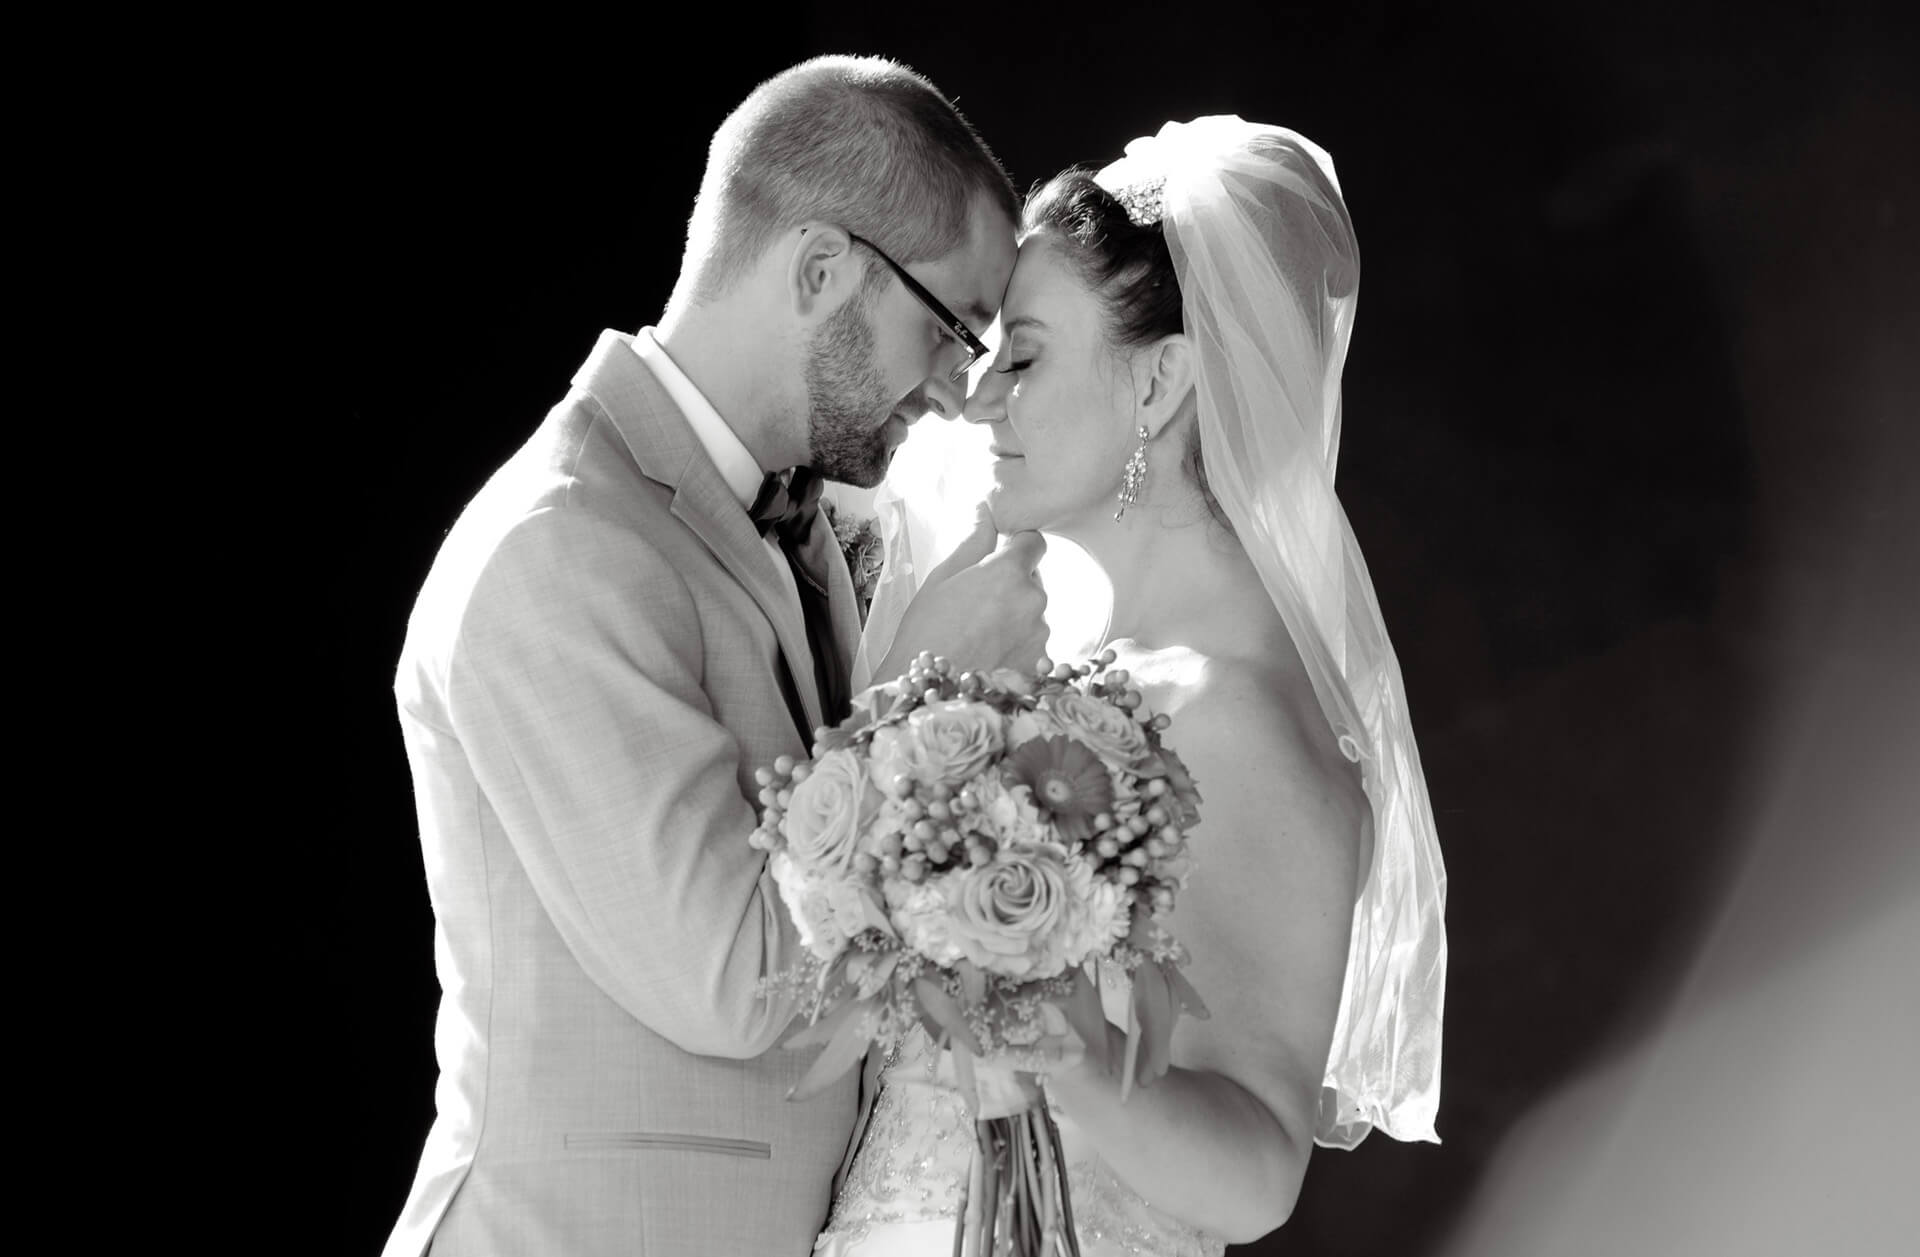 Taking advantage of great light and a romantic Michigan wedding couple, this artwork was created in Sterling Heights, Michigan while both their families sat and watched!